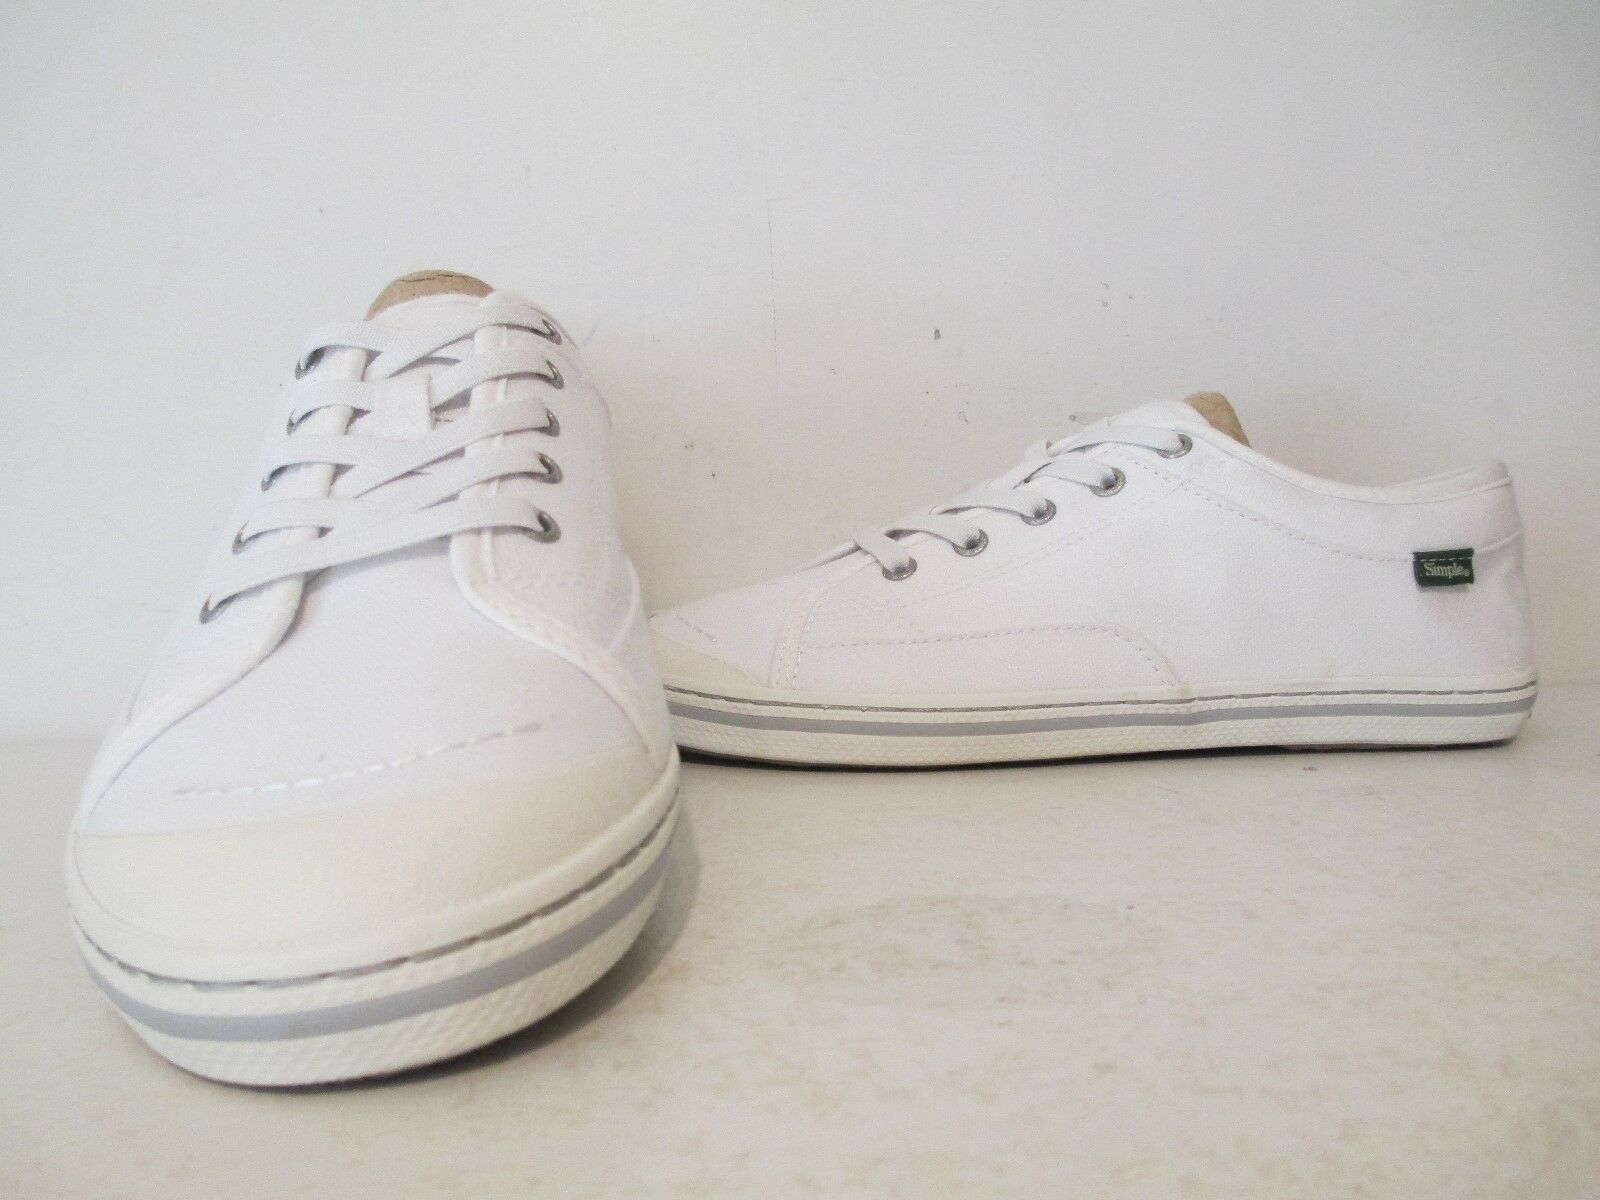 Simple Womens Satire Canvas Casual Low Fashion Sneakers White Sizes 7 8 9.5 WIDE